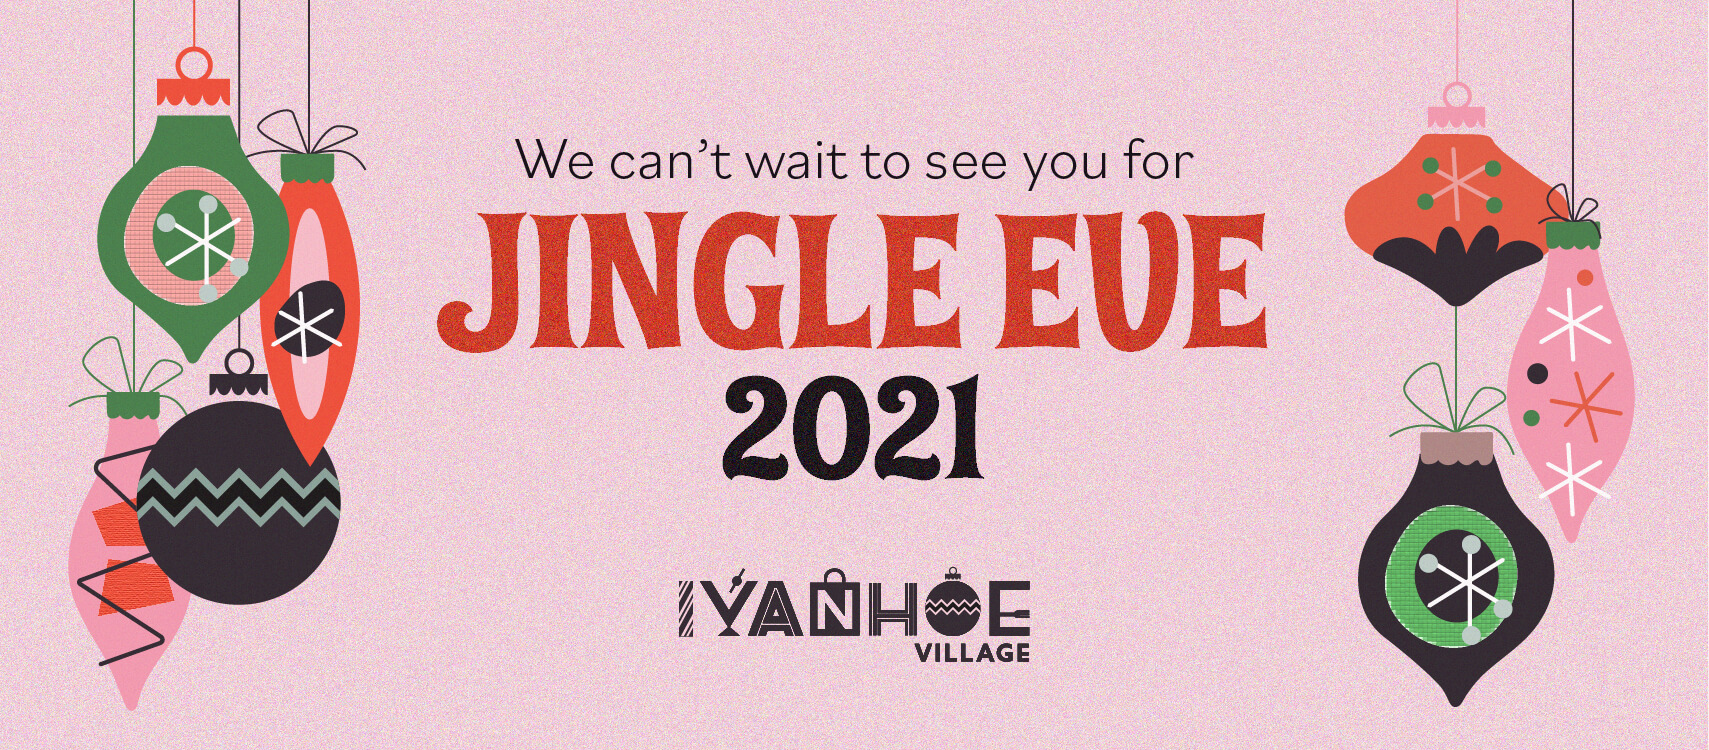 Jingle Eve 2021, We Can't Wait to See You in pink